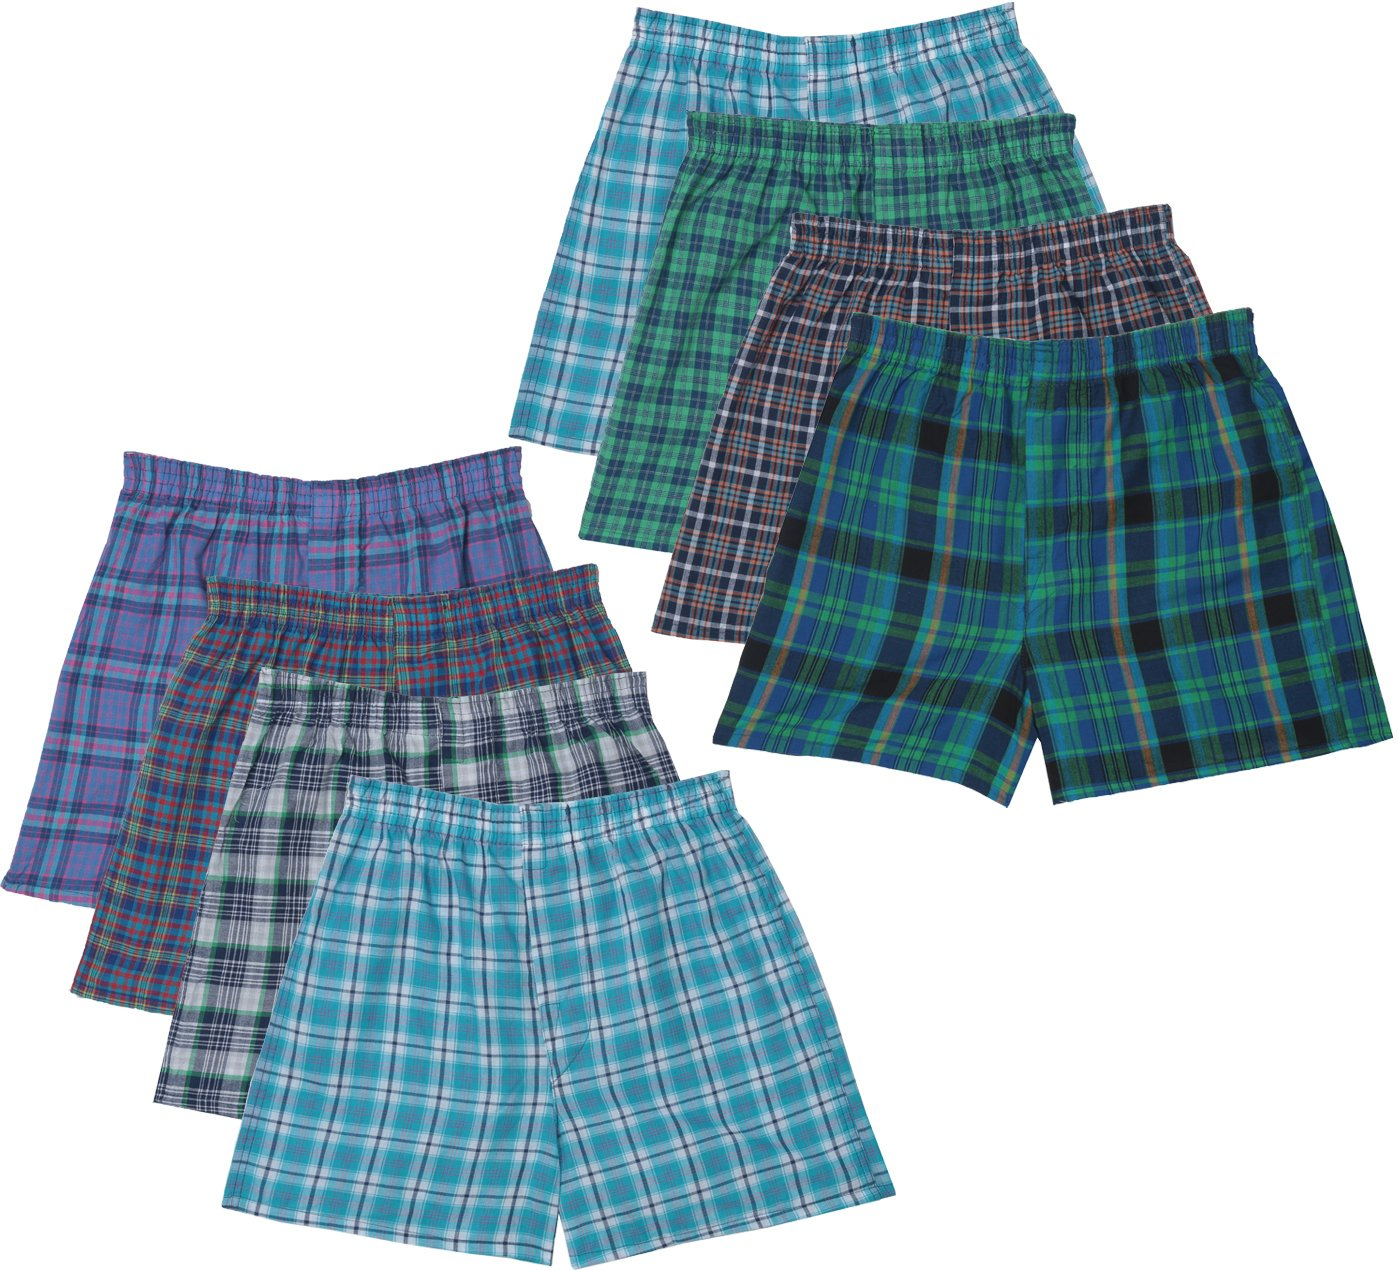 Fruit of the Loom Boys' Plaid Boxer 8 Pack, Assorted, Large